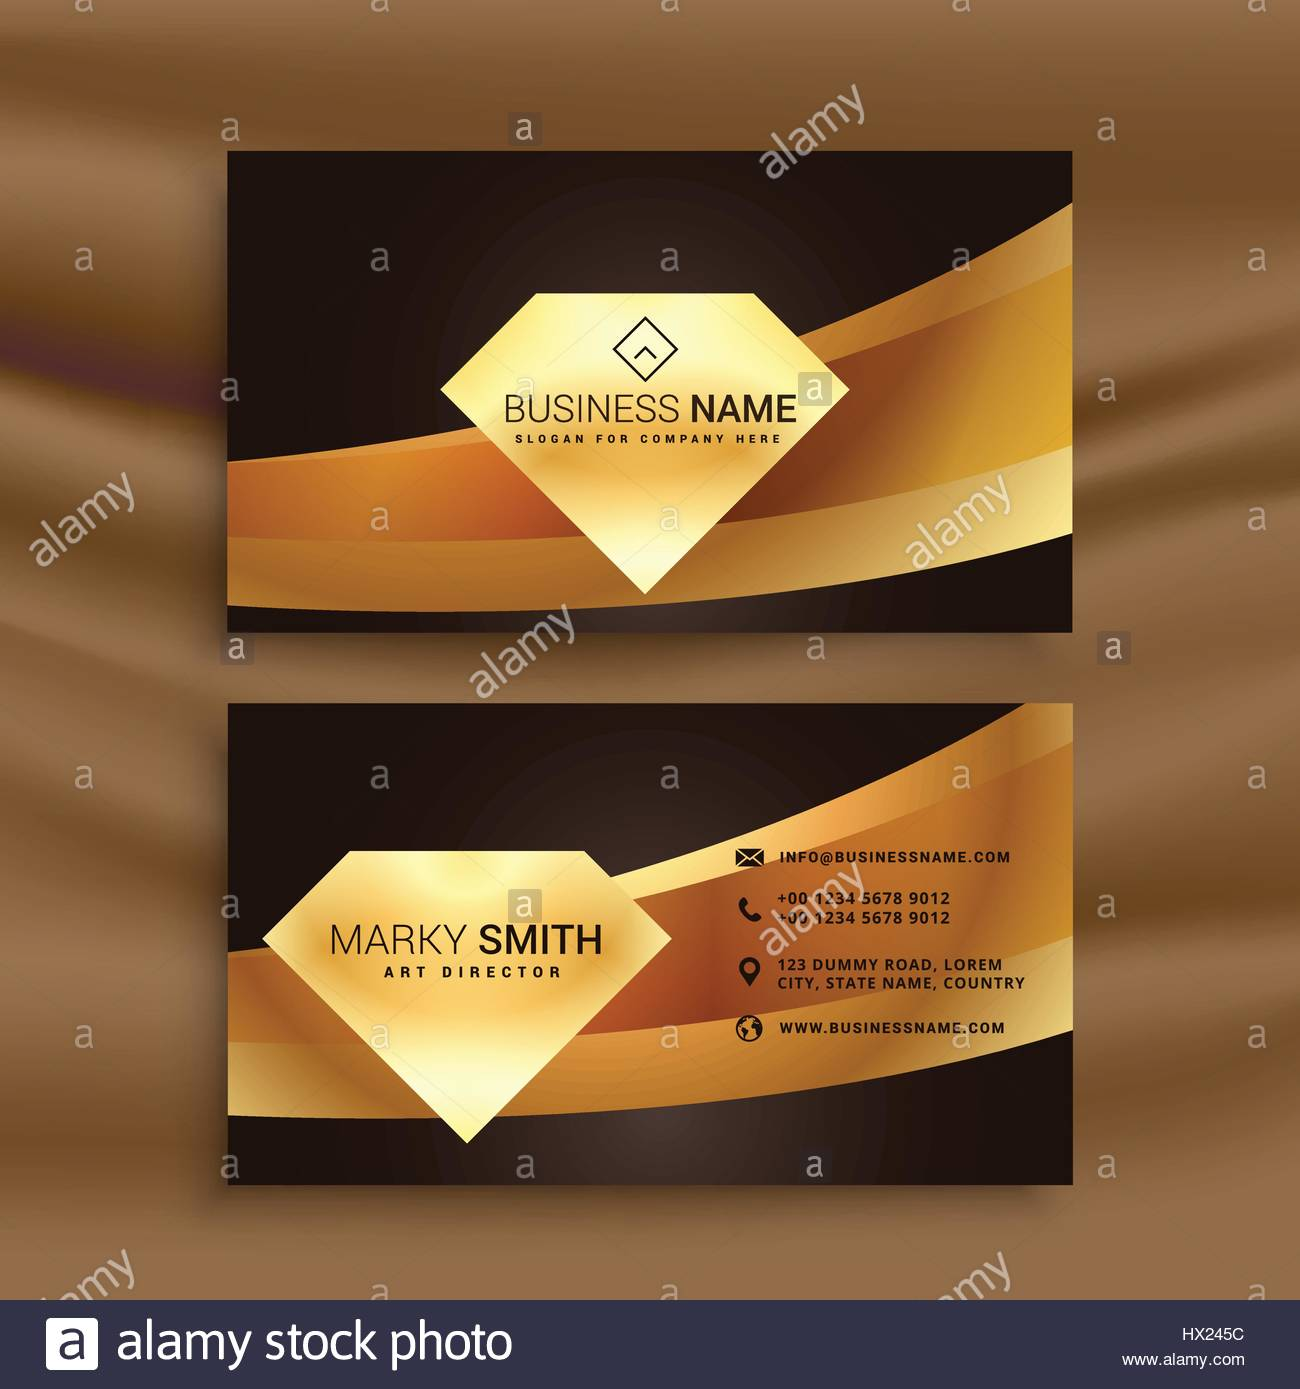 Premium business card template with golden wave shape stock vector premium business card template with golden wave shape wajeb Gallery